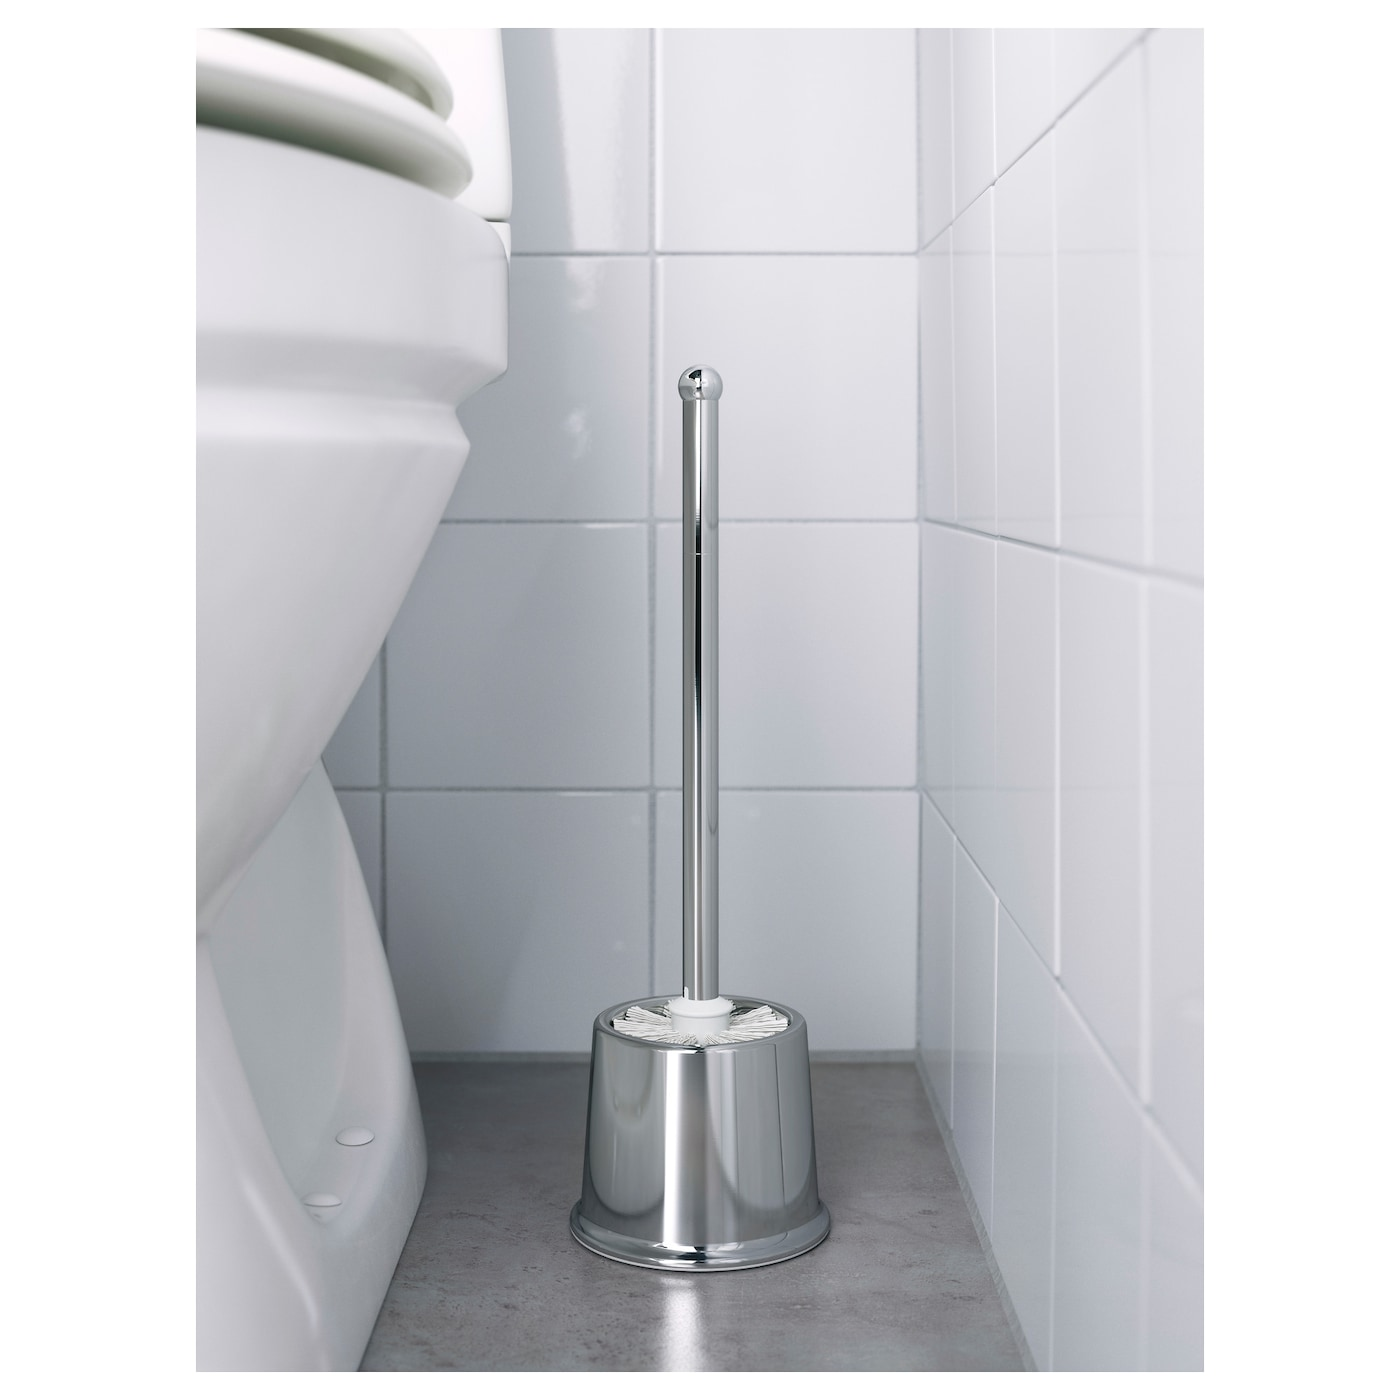 IKEA VOXNAN toilet brush The chrome finish is durable and resistant to corrosion.